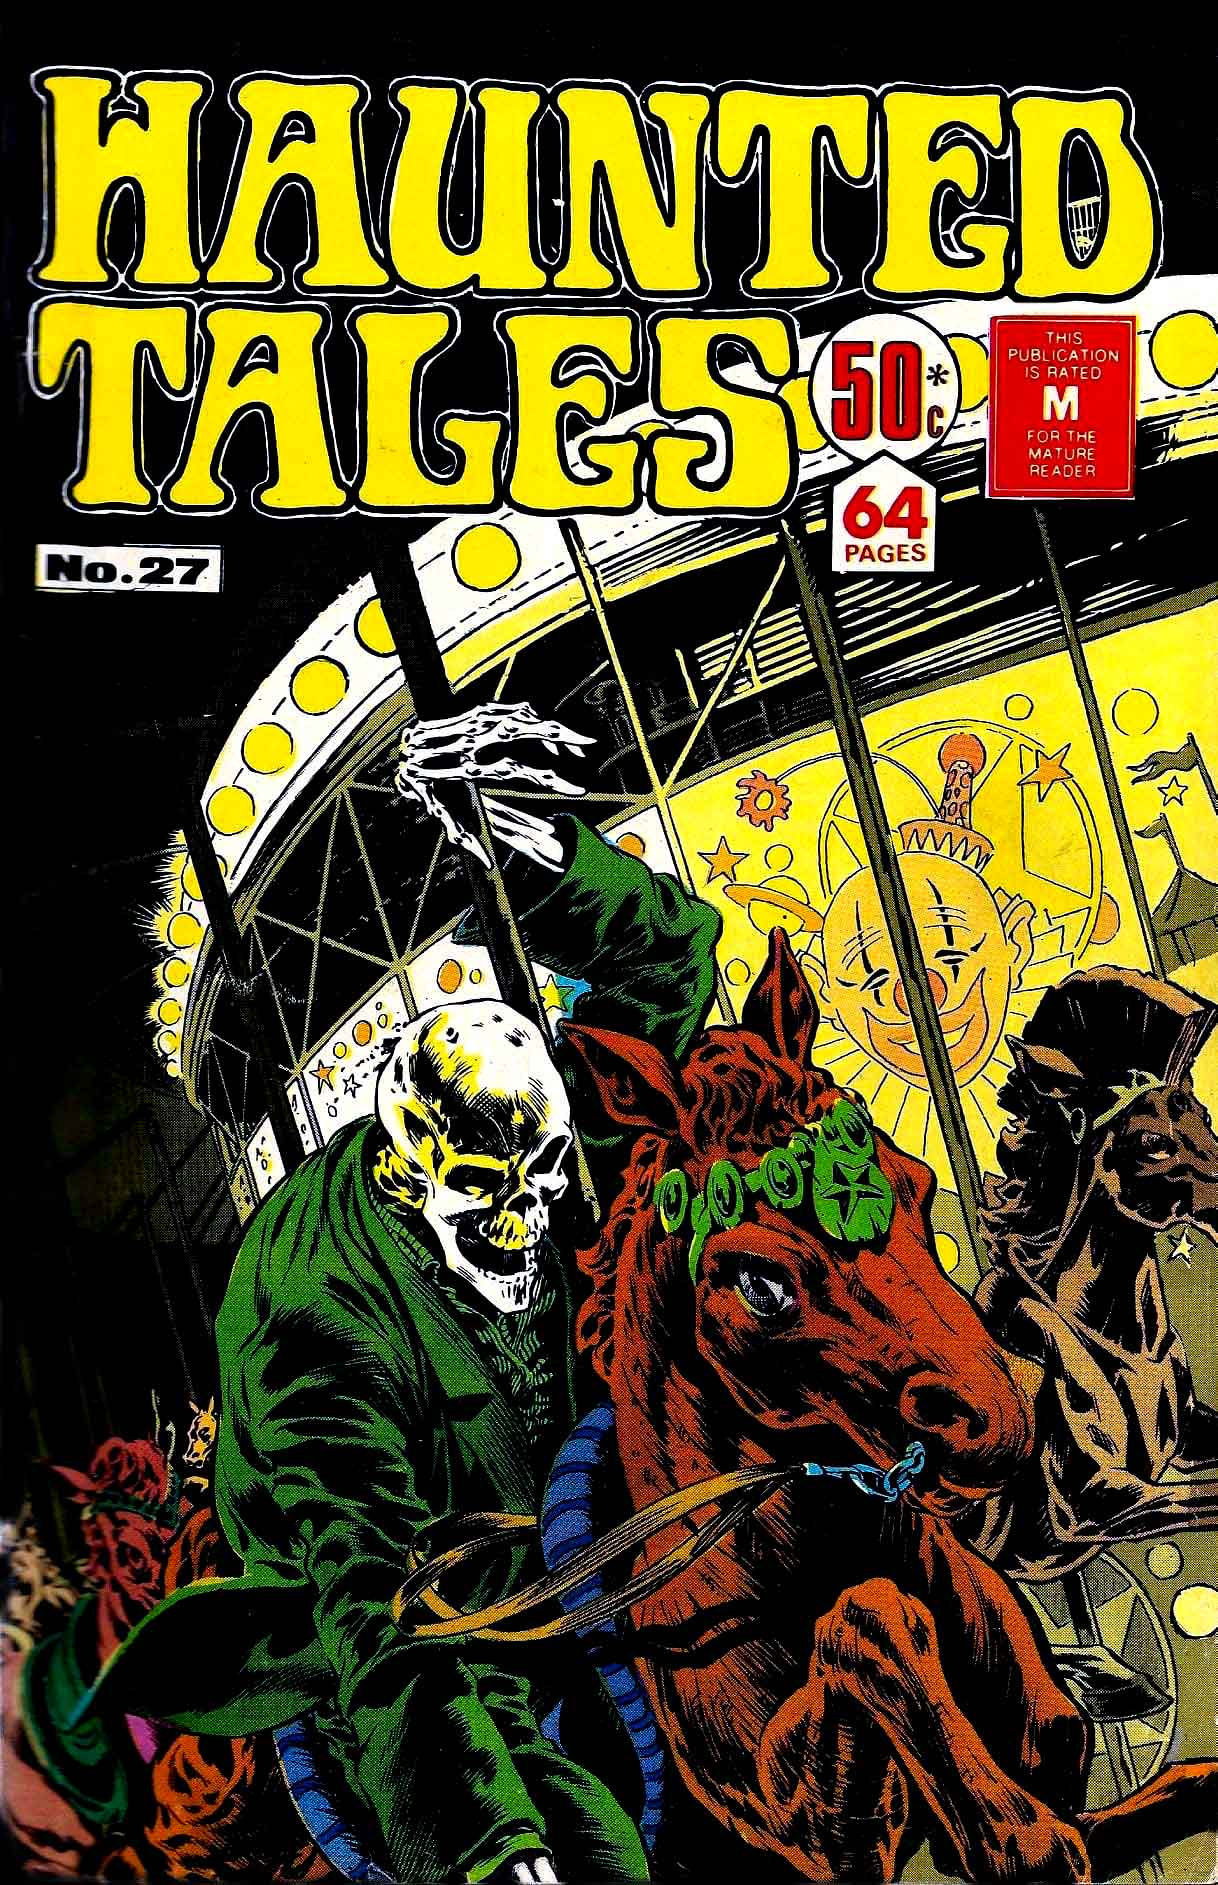 He who laughs last…from Haunted Tales #27